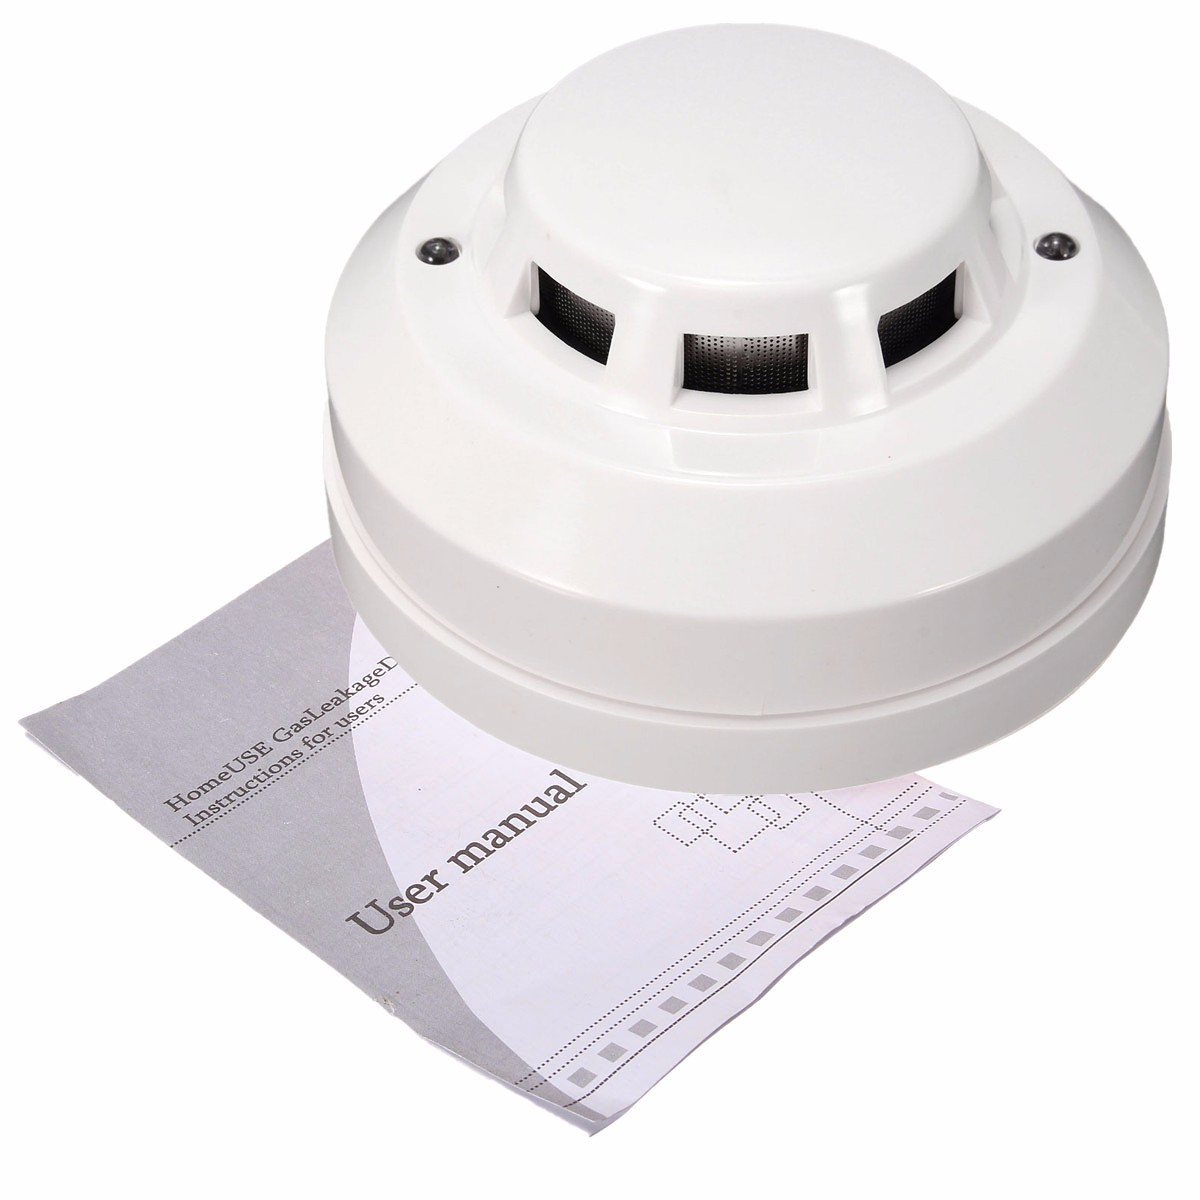 Wired Fire Smoke Coal Gas Sensor Detector Alarm Tester Home Security System